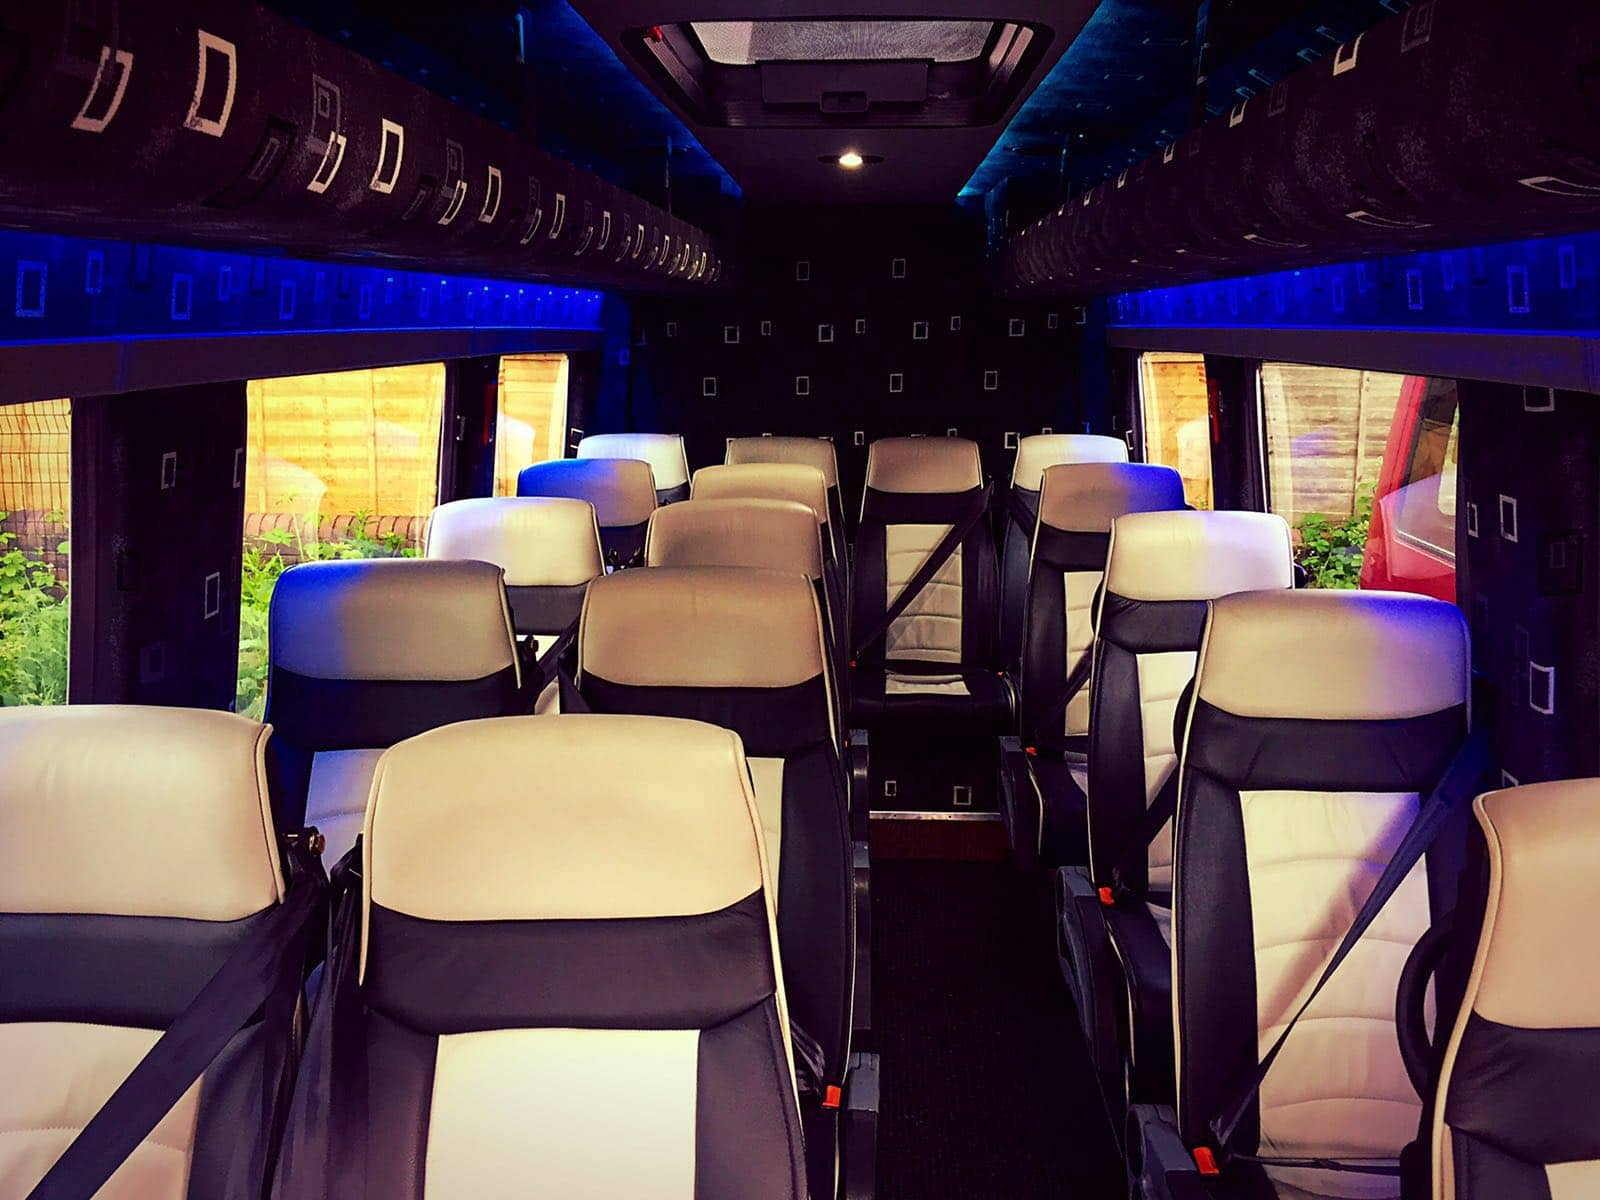 The interior of our Luxury Mercedes Sprinter 16 Seater Minibus. With reclining leather seats with arm-rests and overhead storage.